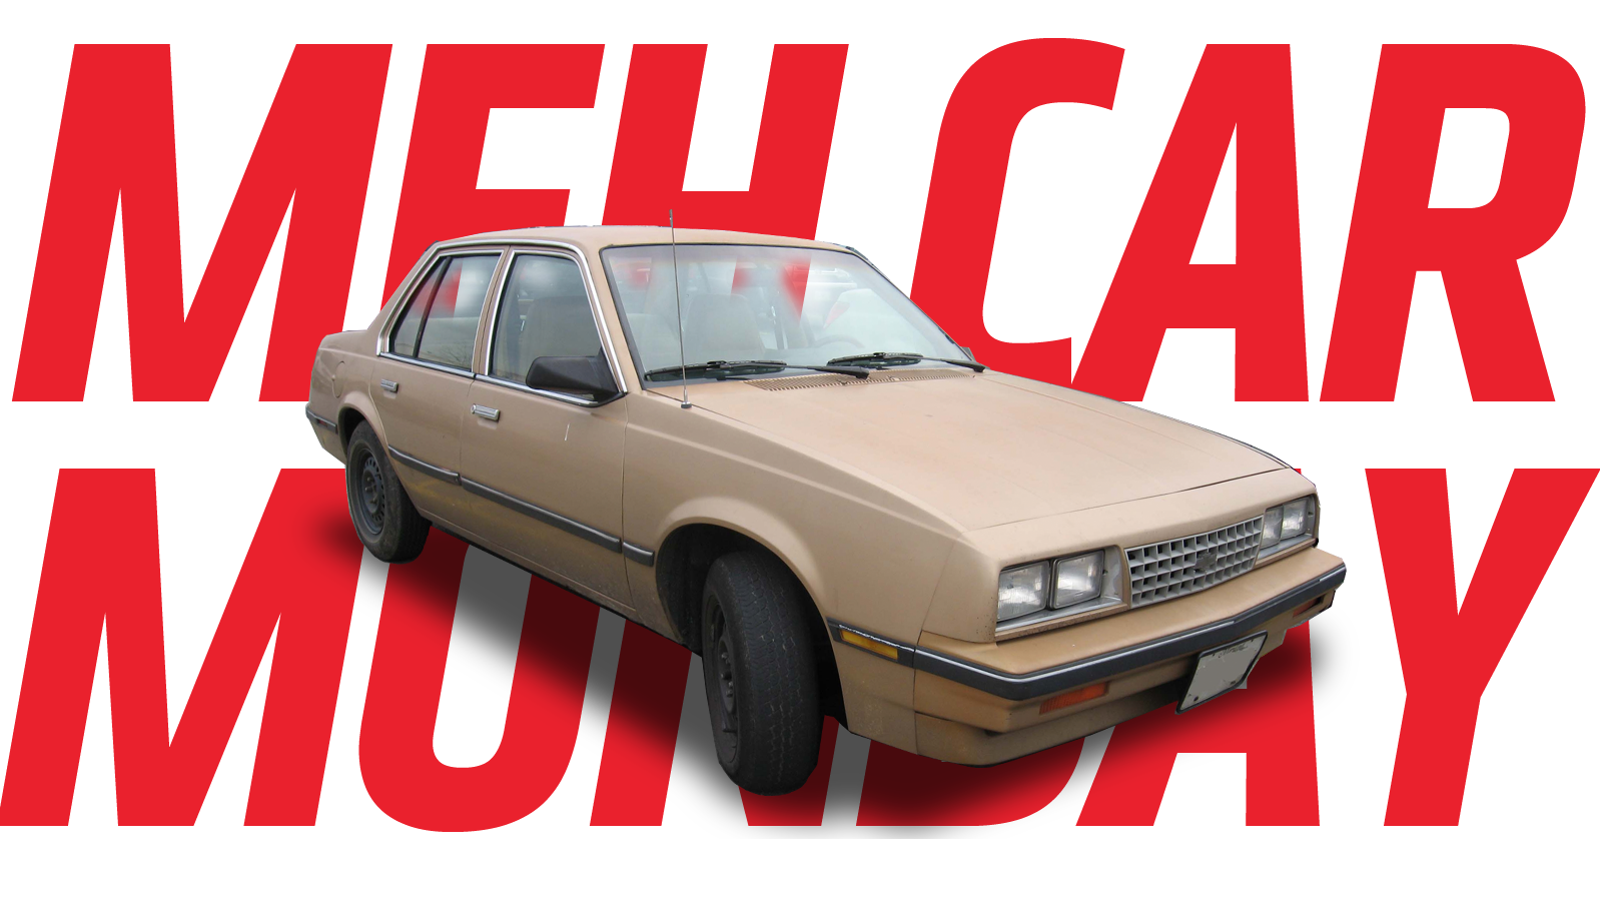 Meh Car Monday: The Chevy Cavalier Was Pretty Cavalier About Giving A Shit